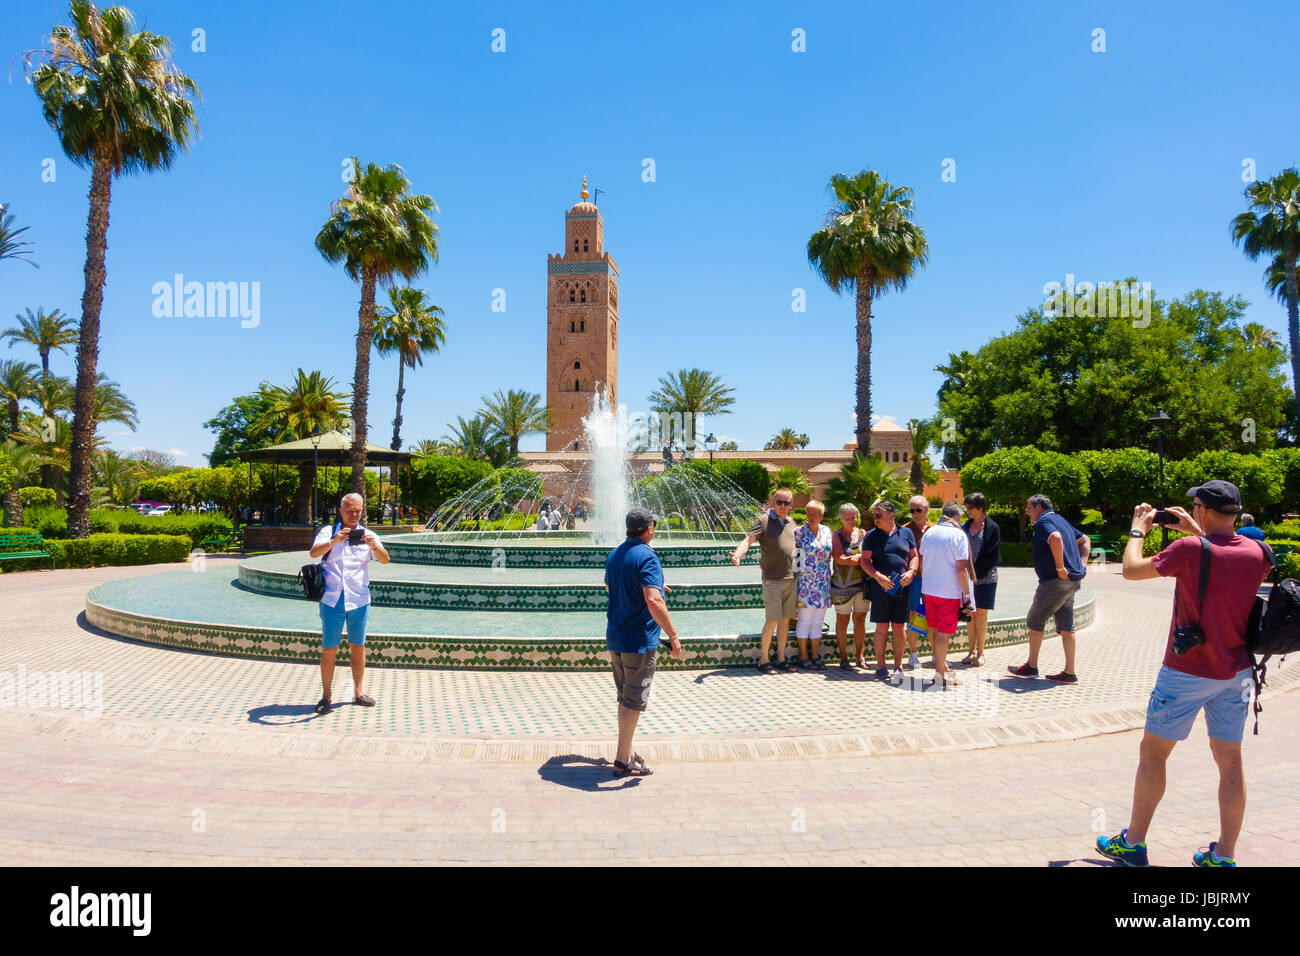 Marrakech, Morocco -  May 12, 2017: A group of tourists taking photos of each other in front of the fountain in - Stock Image